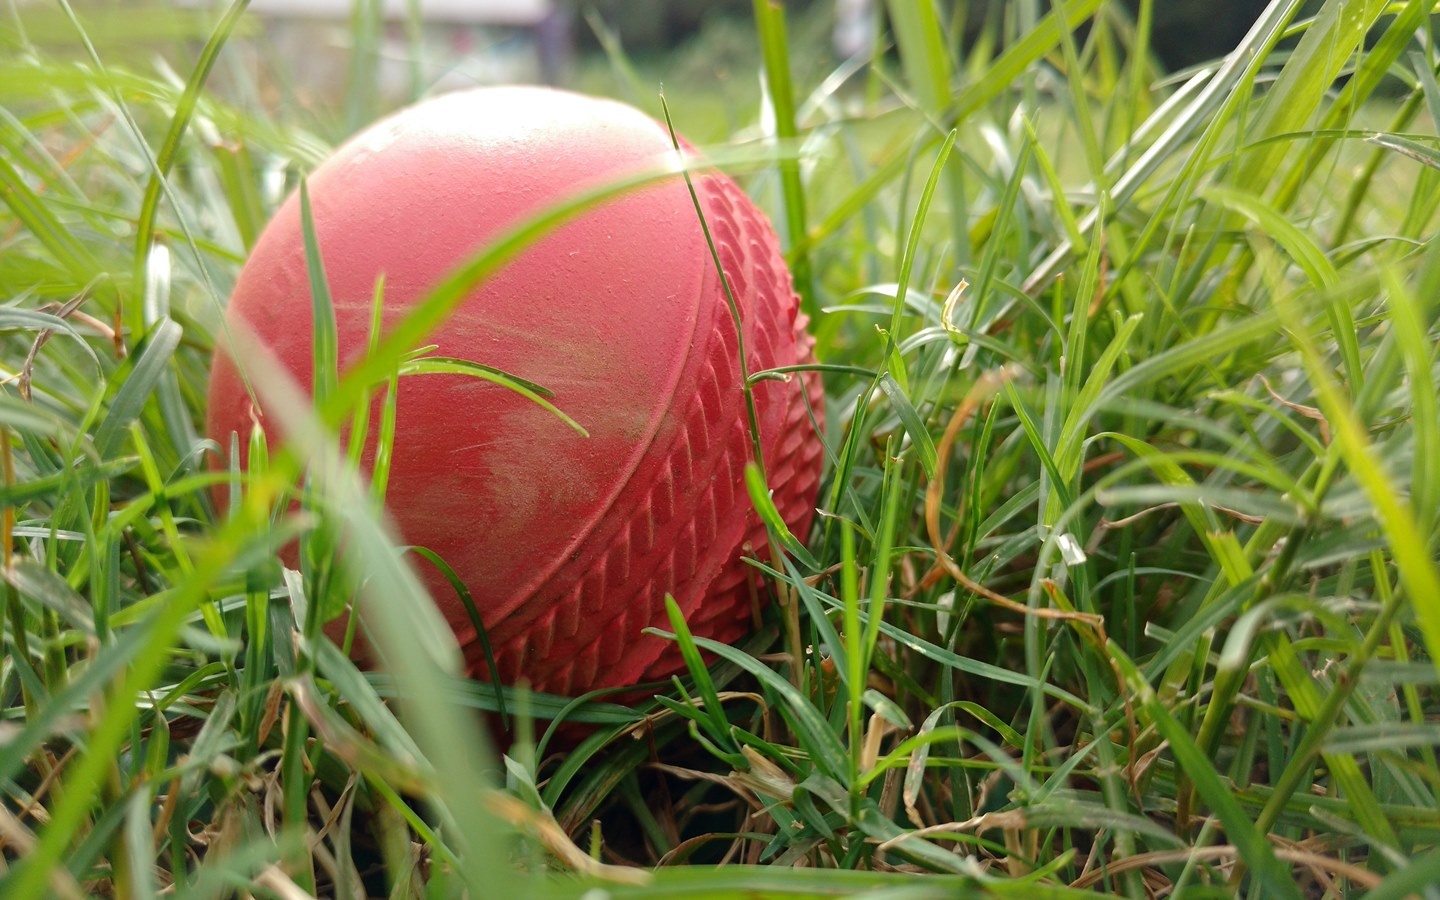 BPL is one of the popular events in Dhaka for cricket lovers